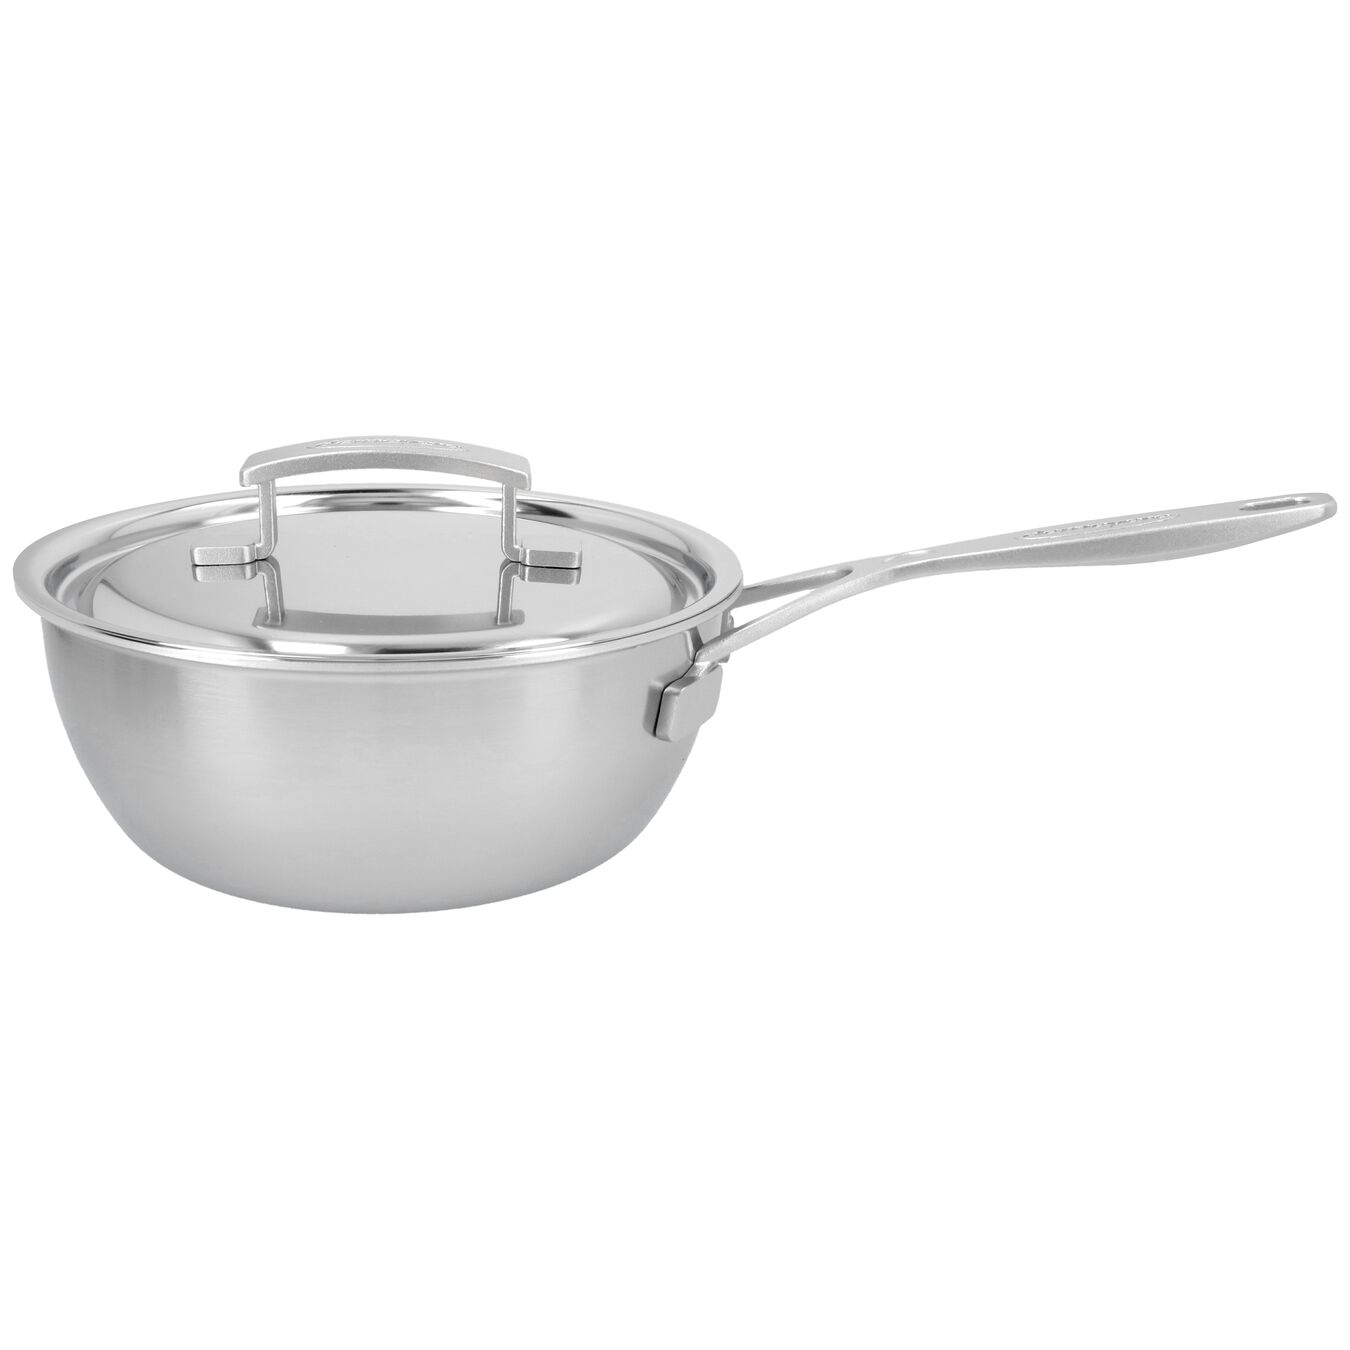 2.25 qt Sauteuse conical, 18/10 Stainless Steel ,,large 4